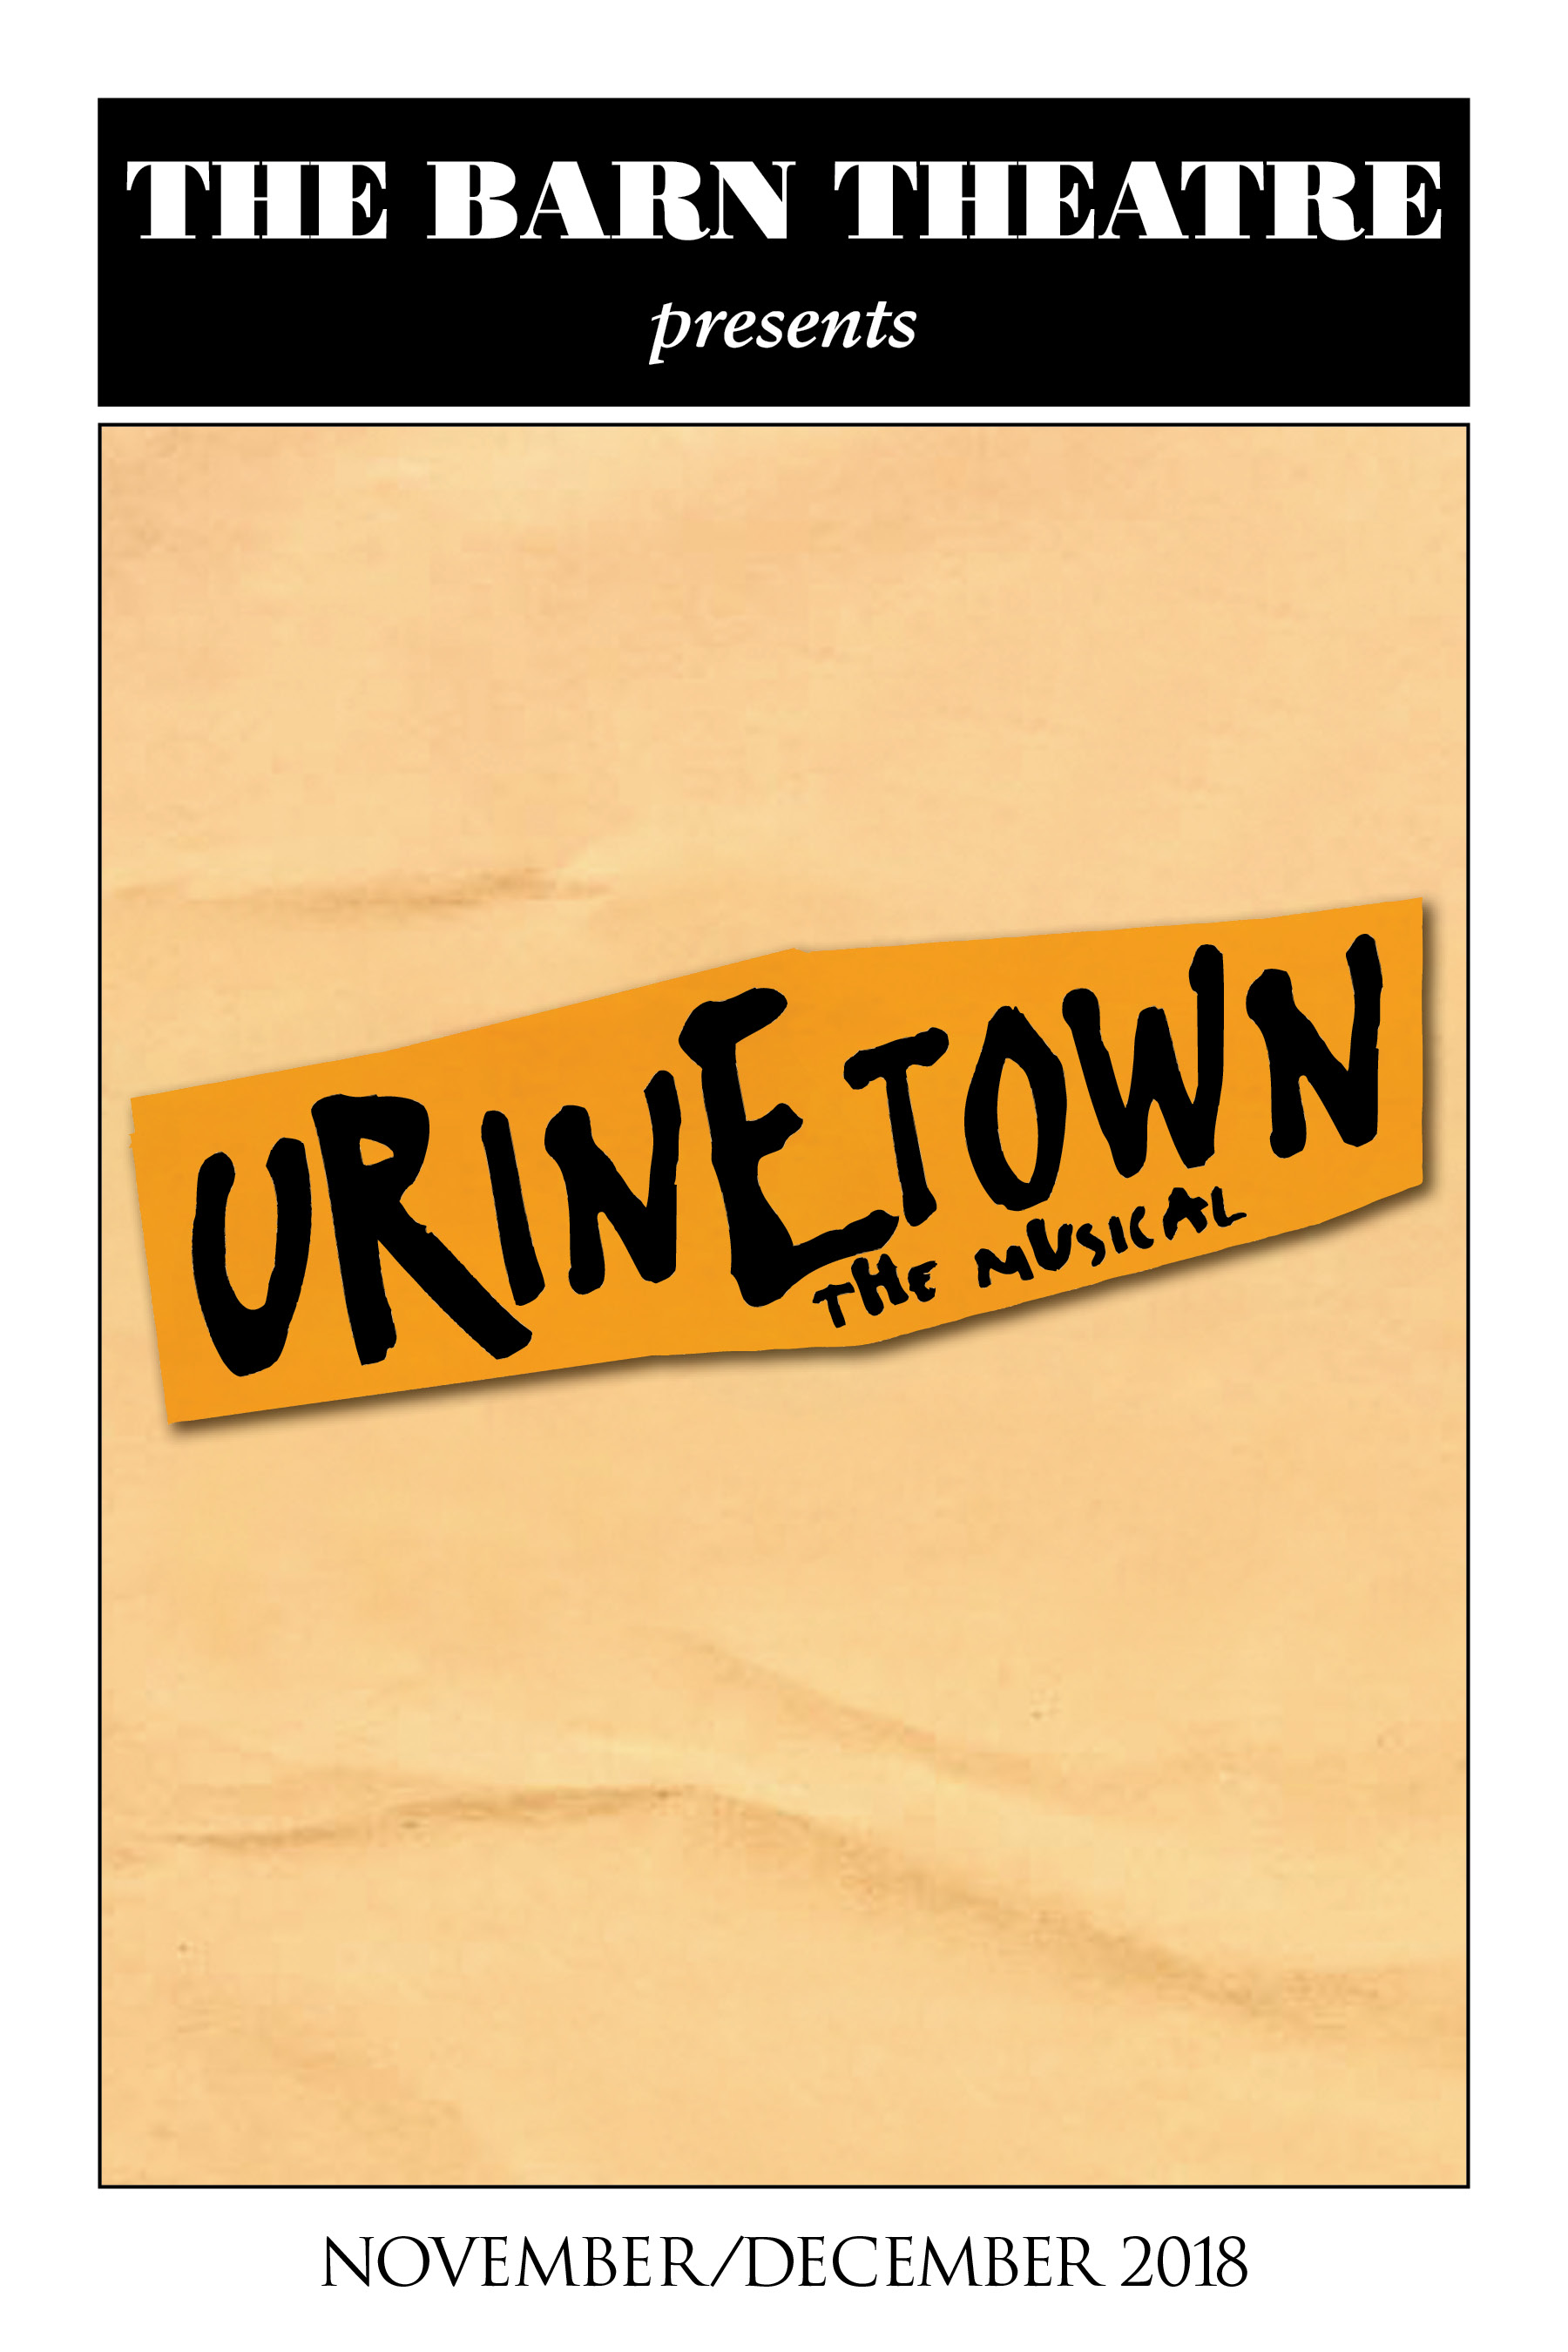 Program Cover for Urinetown